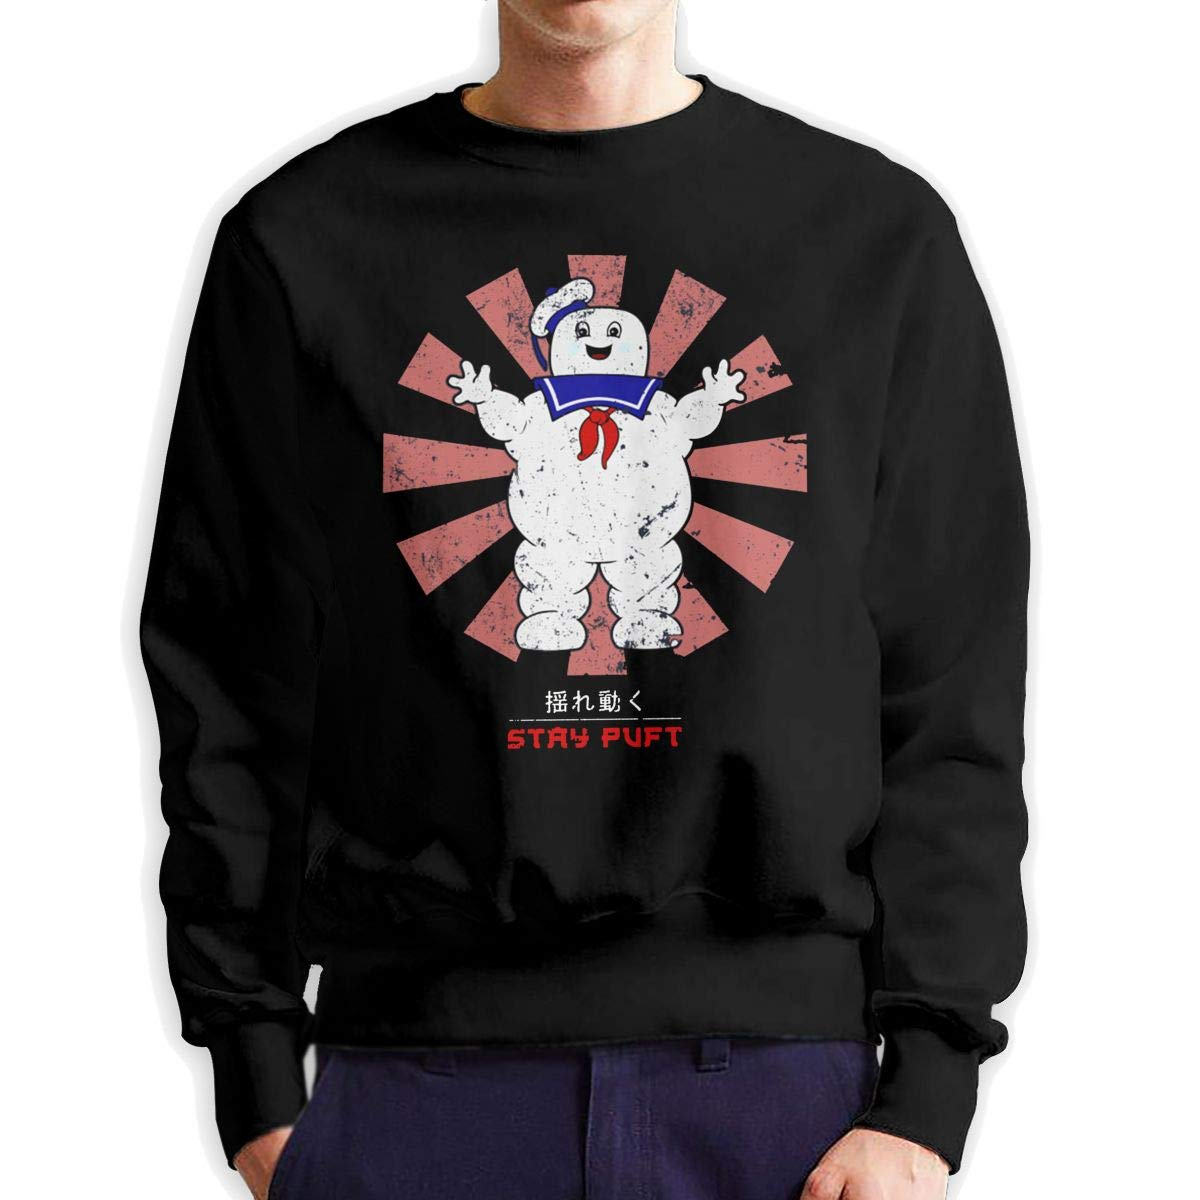 Obagaty Ghostbusters Stay Puft Men Casual Style Crew Neck Sportswear Black